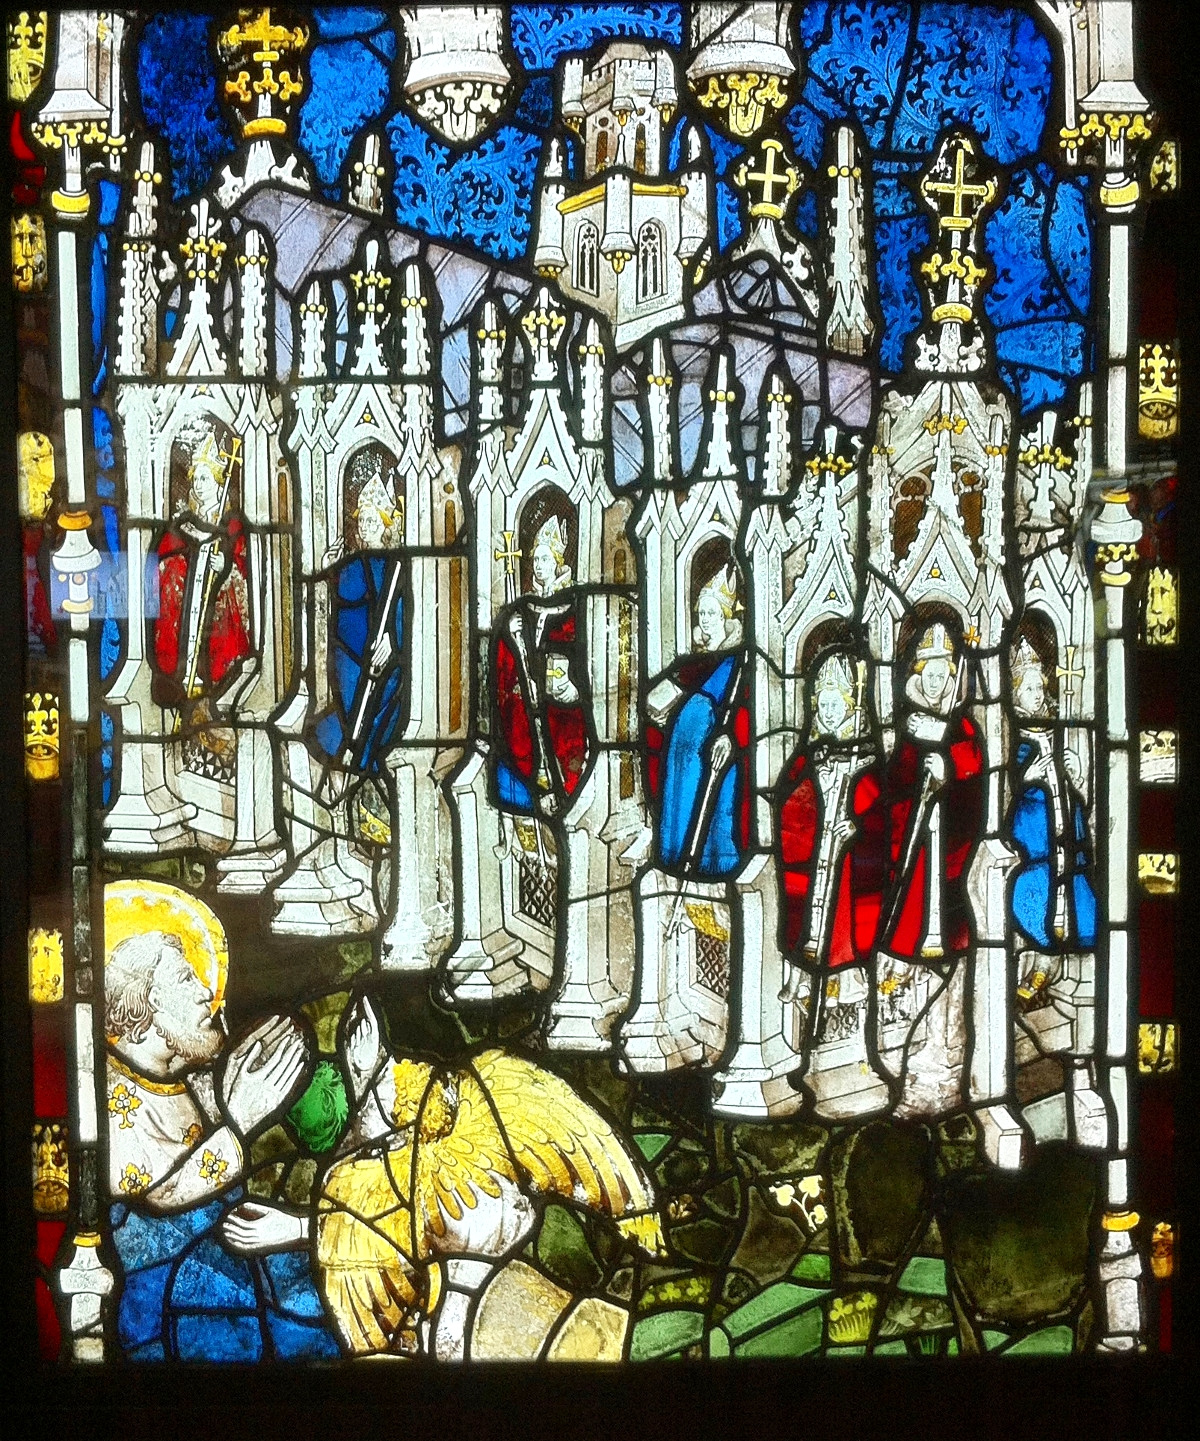 The Seven Churches of Asia in the East Window at York Minster. Credit Andrewrabbott